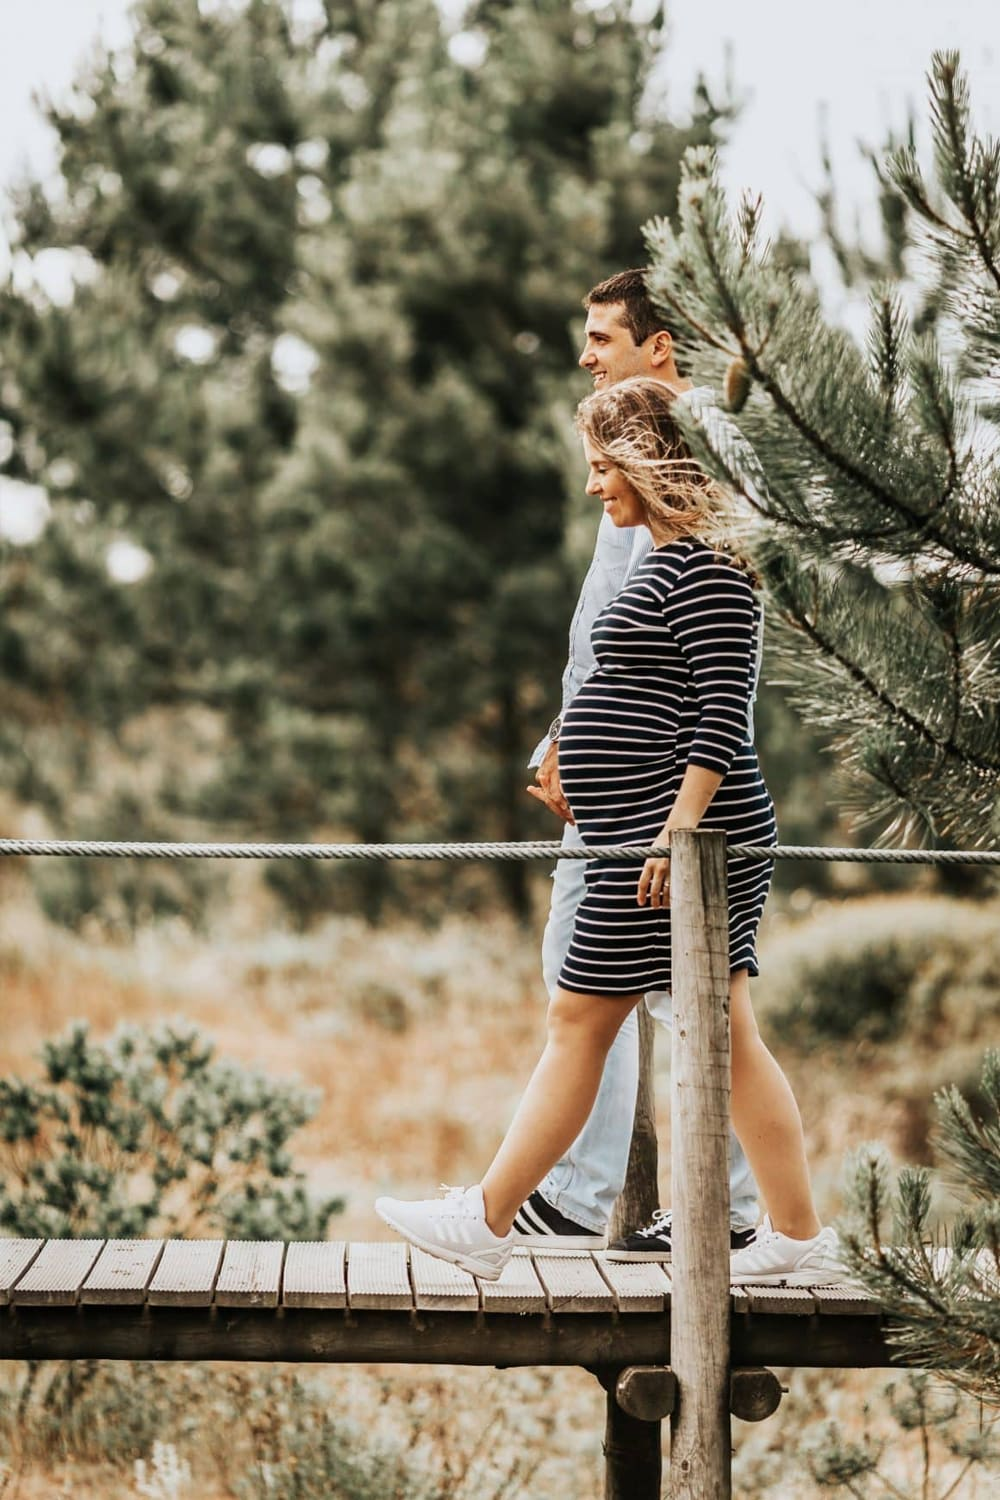 Pregnant woman taking a stroll with her partner